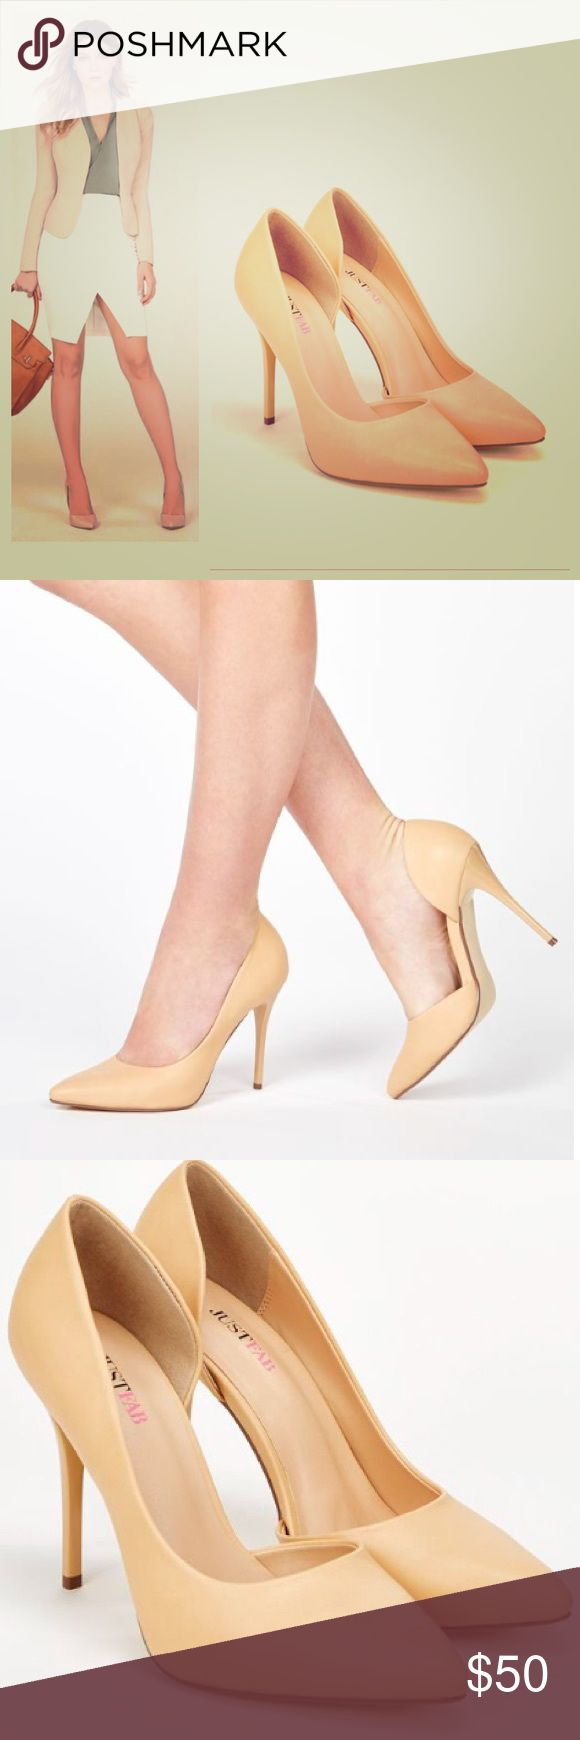 """Classic nude pump Thinking spring. Get this classic wardrobe staple early and get a jump on spring. Featuring a sultry lacquered heel 👠 I listed them as the size they measure not the size on the box. They run big, a half a size to be exact. The 7.5 measures exactly 9.5"""" which translates to an 8 and the 8s measures 10"""" which translates to 8.5 on the American women's size chart. Details Approx. Heel Height: 4.25"""" Approx. Platform Height: N/A Approx. Calf Circumference: N/A Synthetic Upper Man…"""